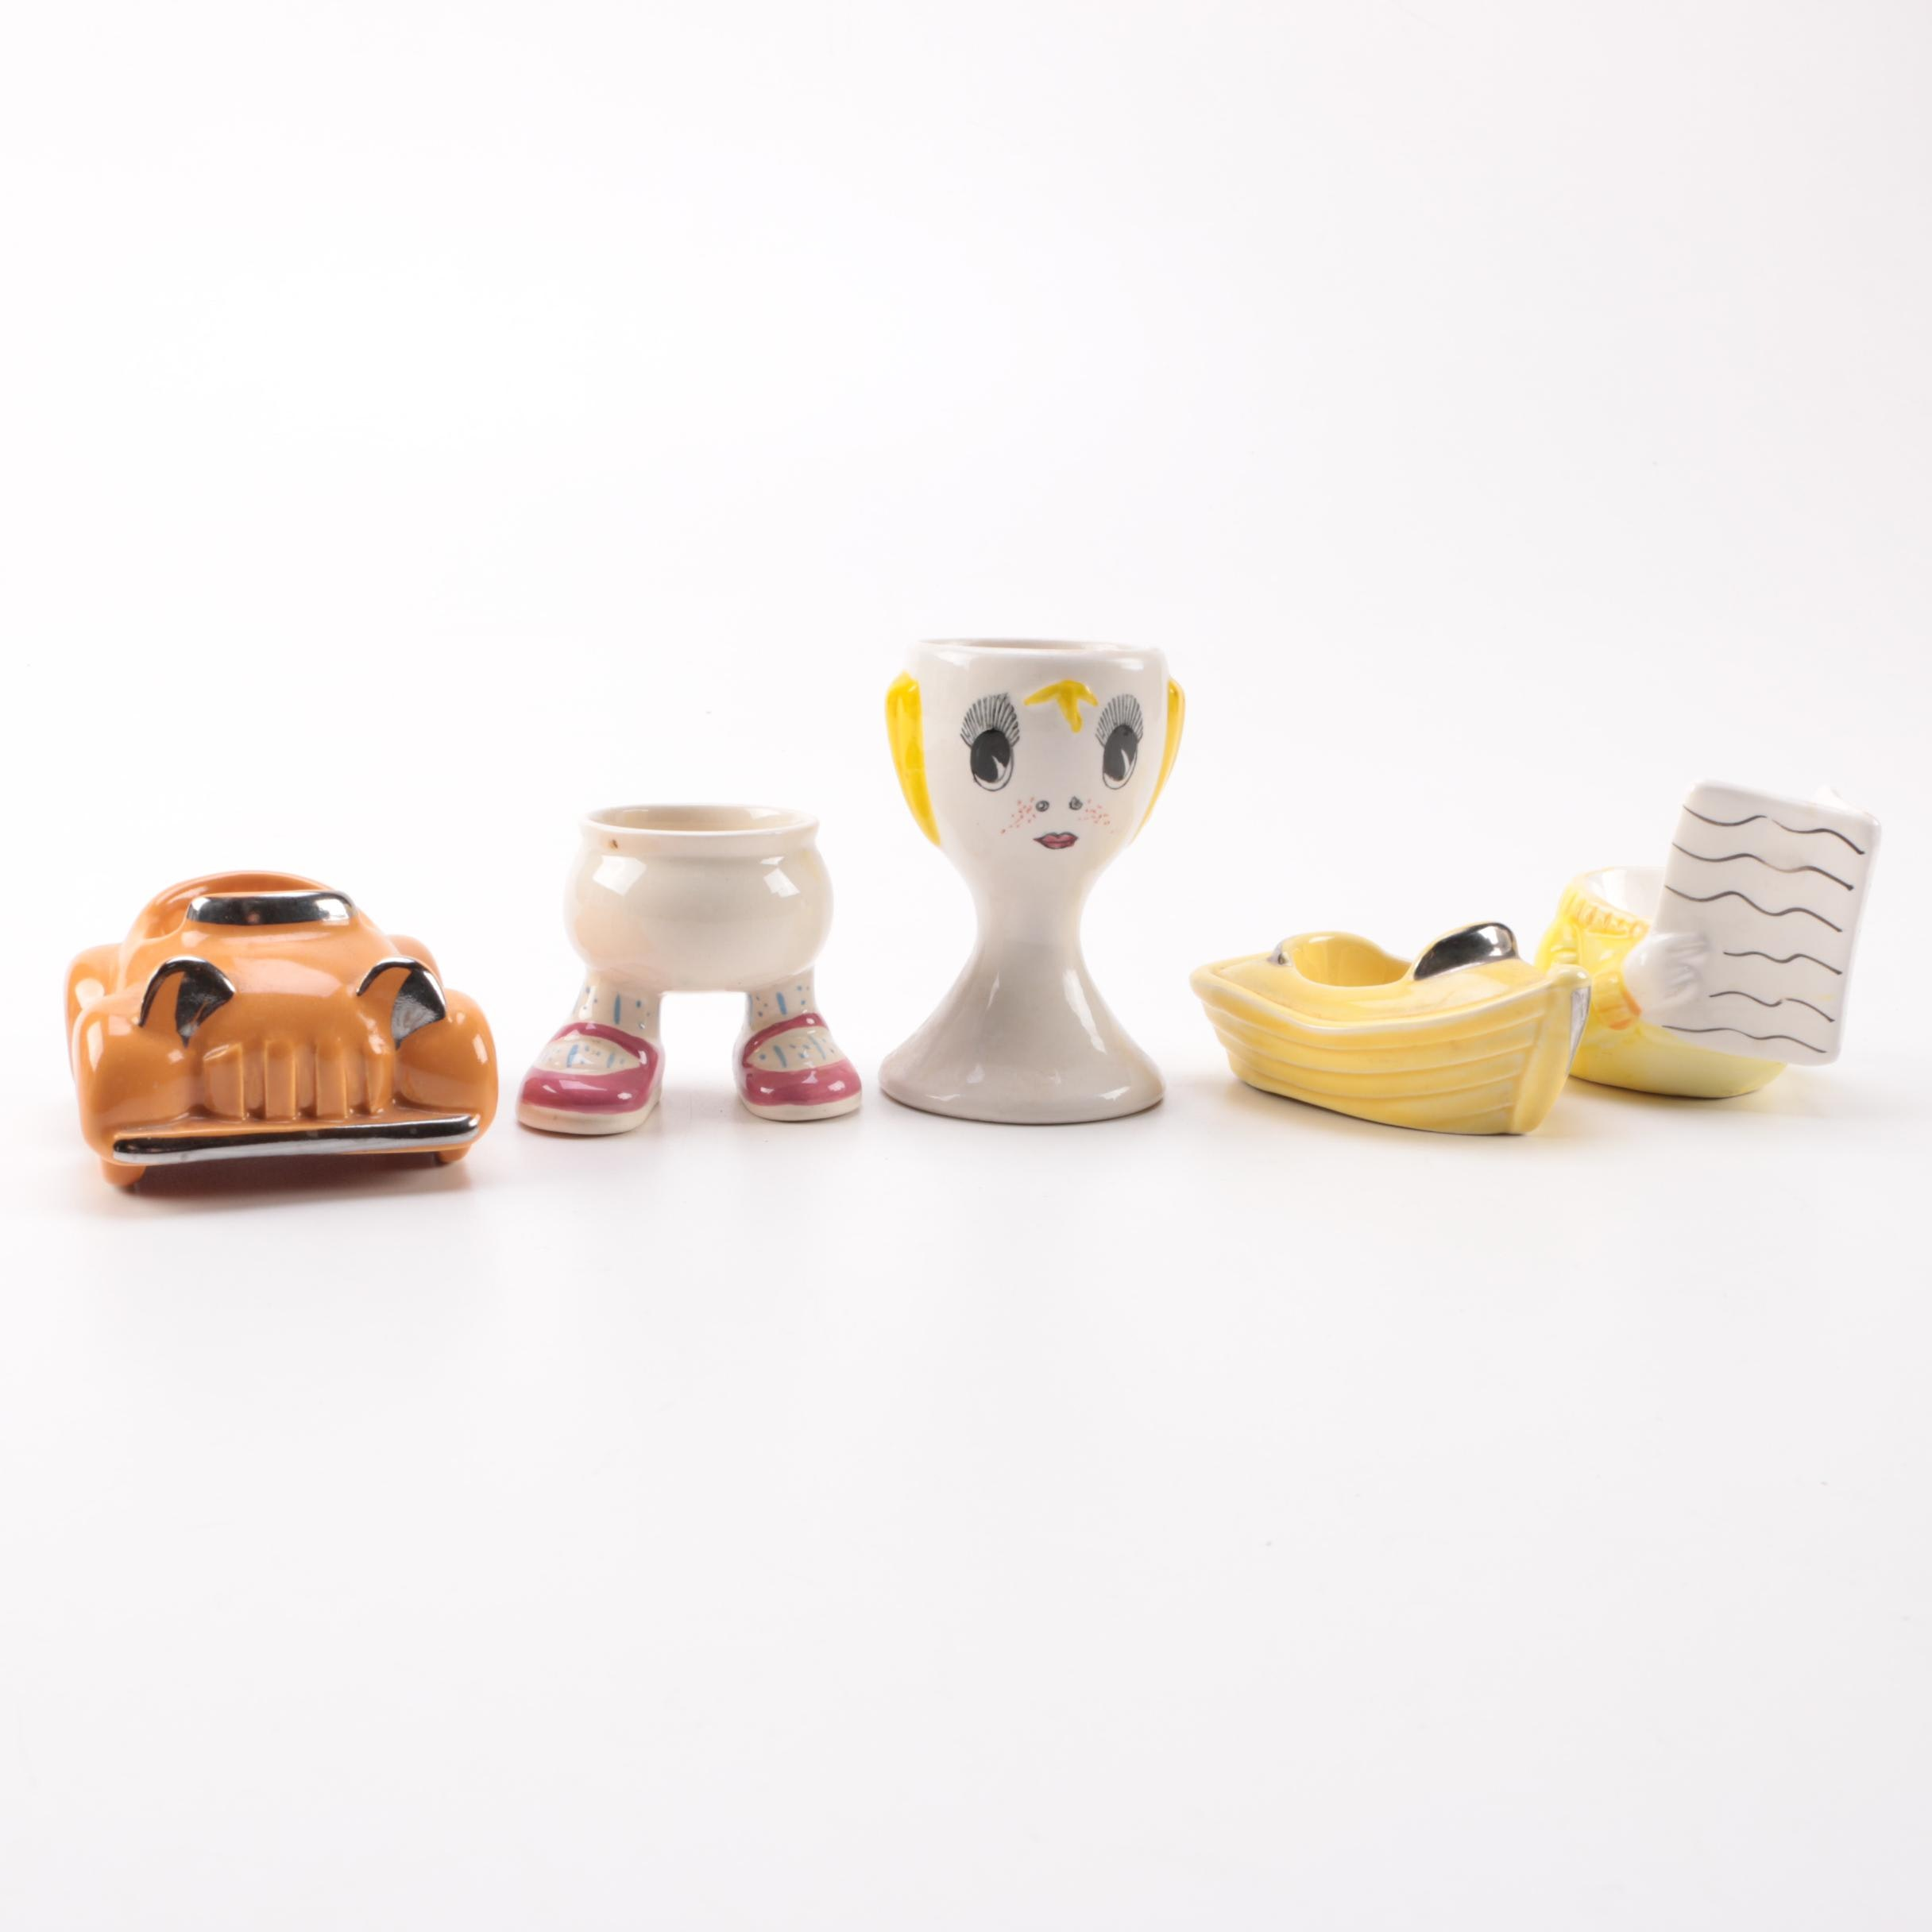 Whimsical Ceramic Egg Cup Collection